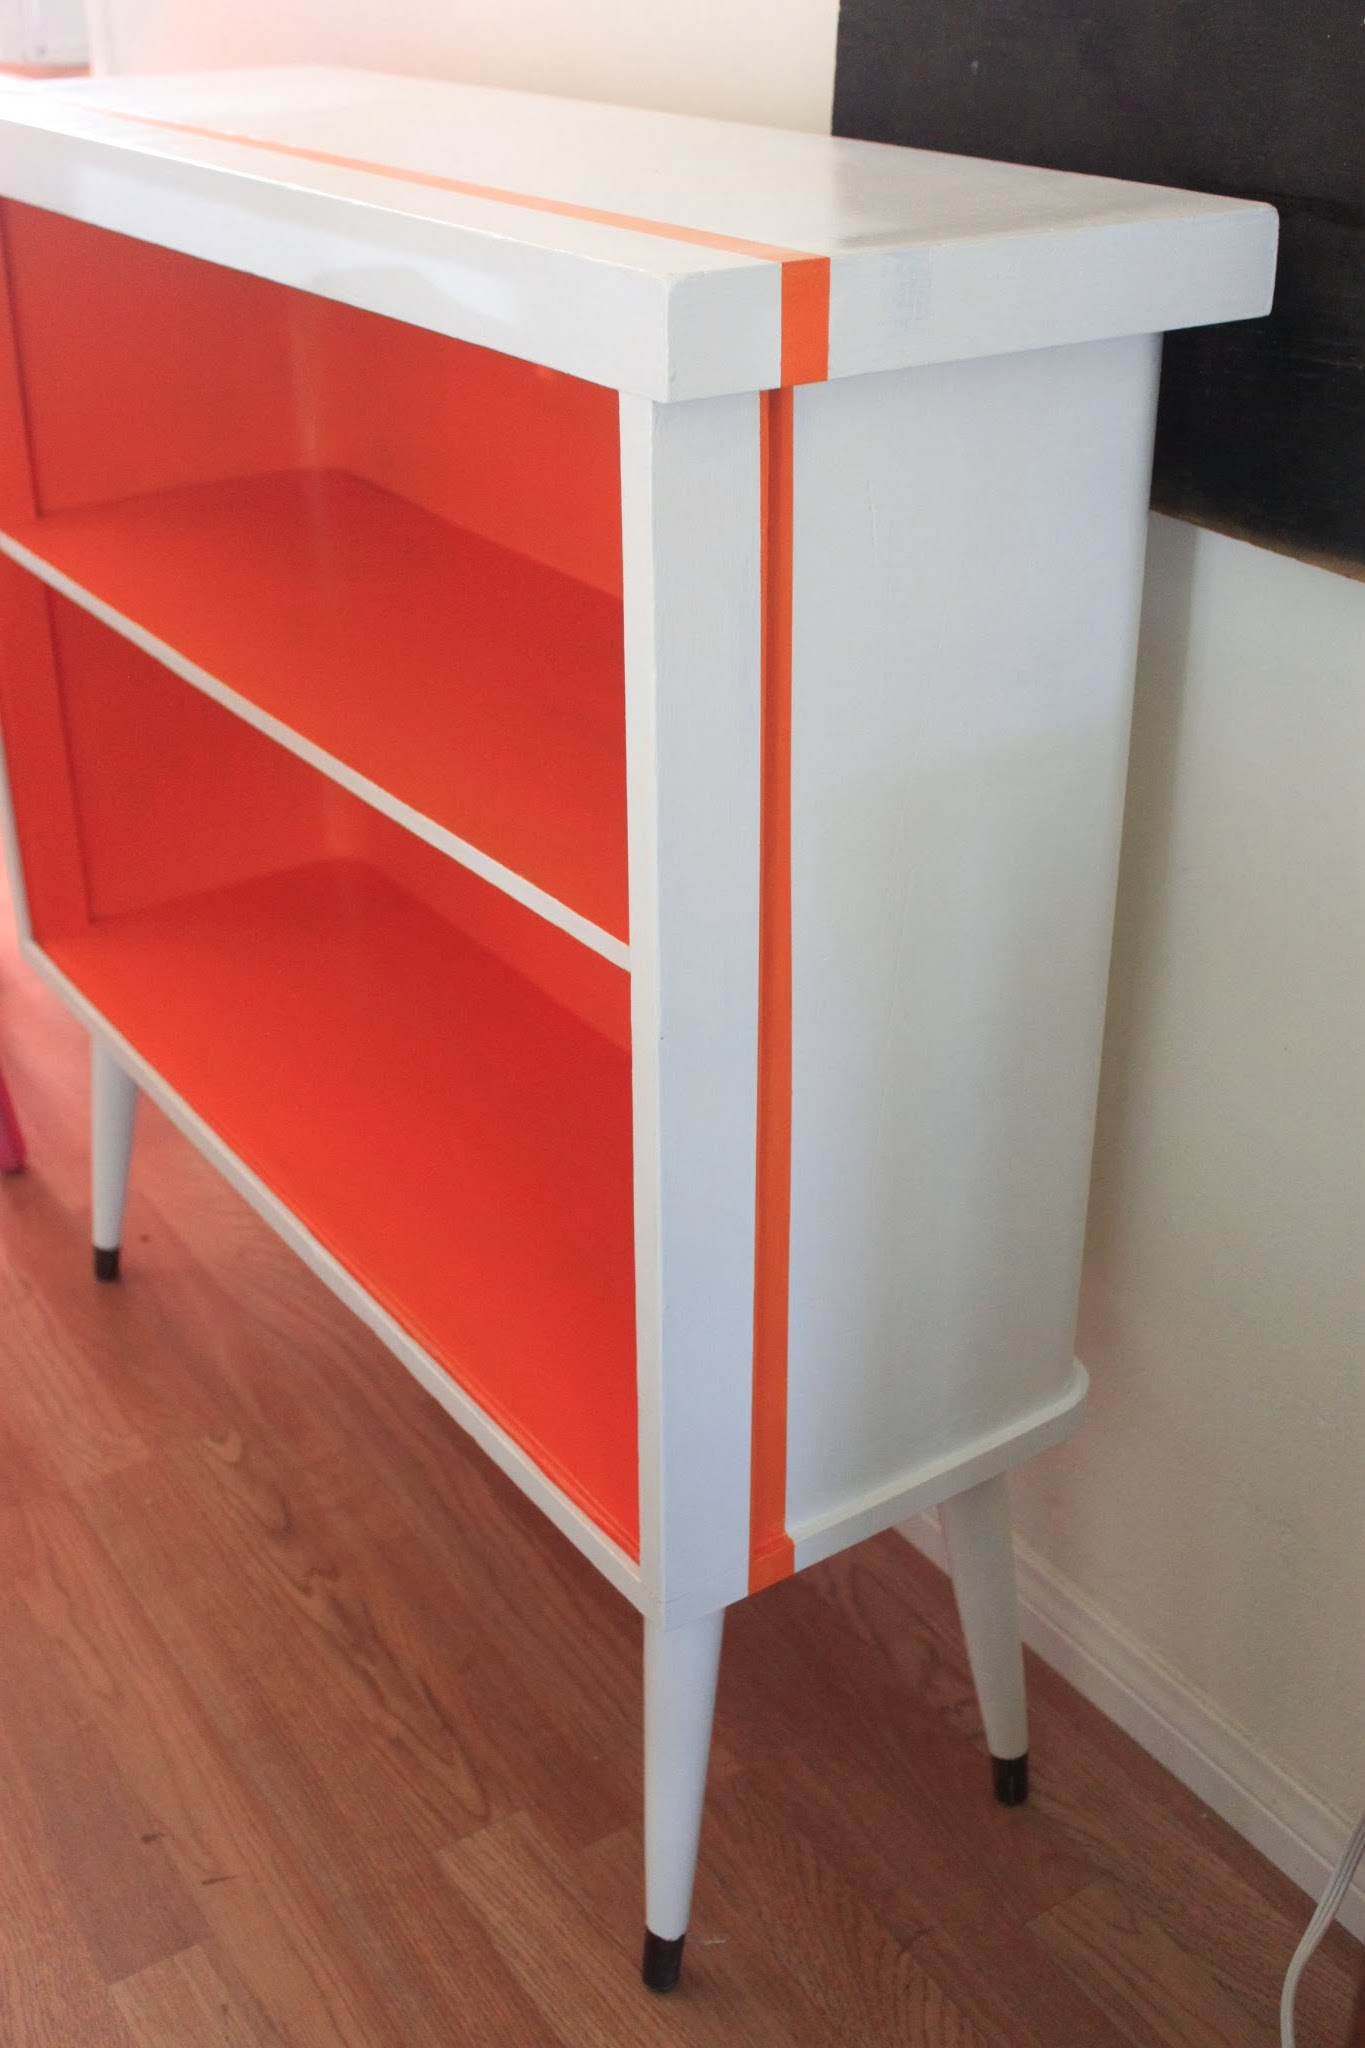 Tang mid century modern bookcase make over queen b for Diy modern bookshelf